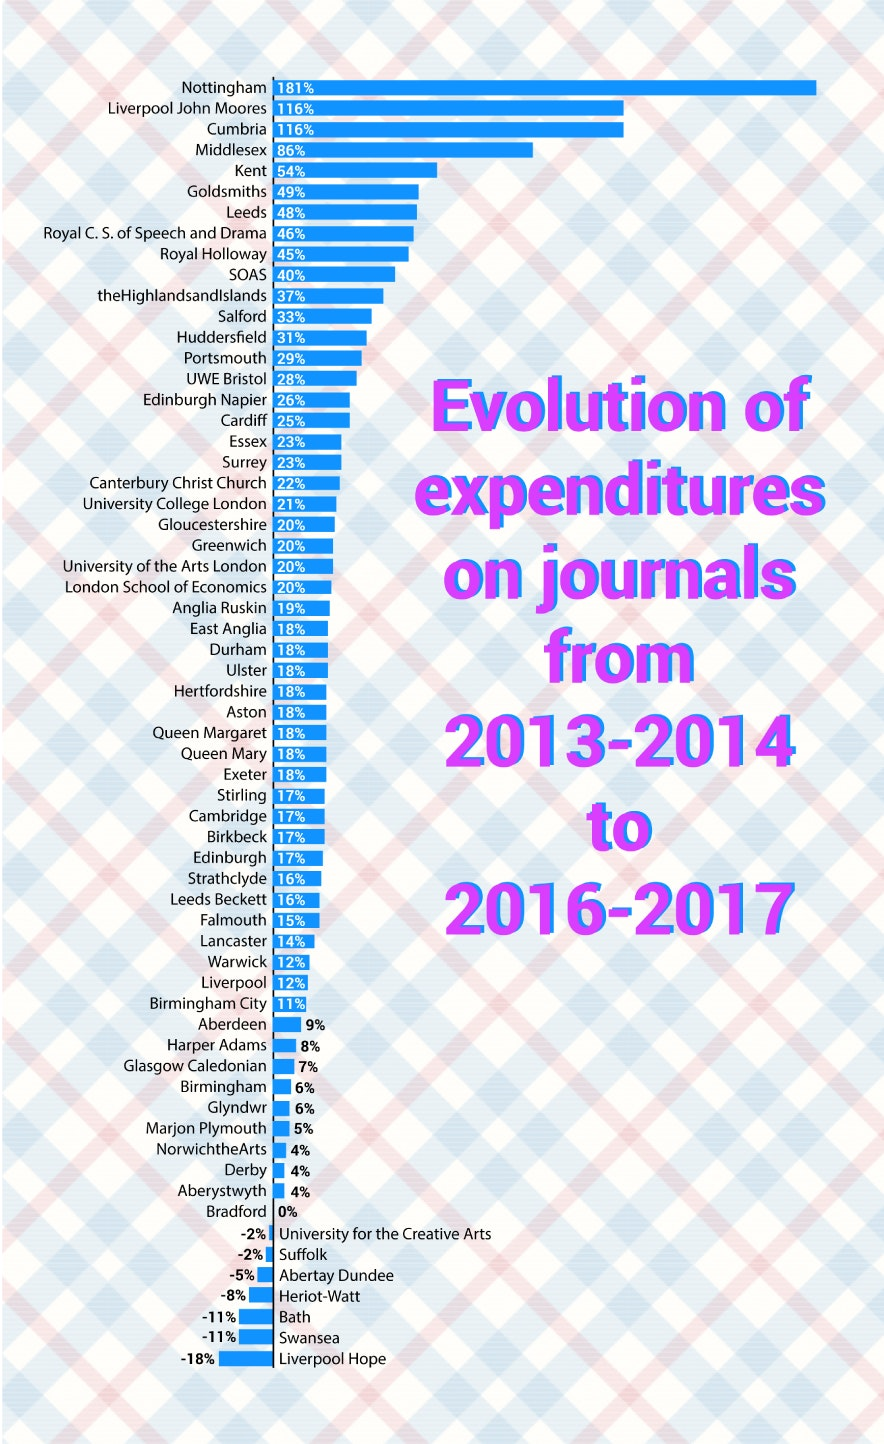 Scientific journals are (still) getting (more) expensive